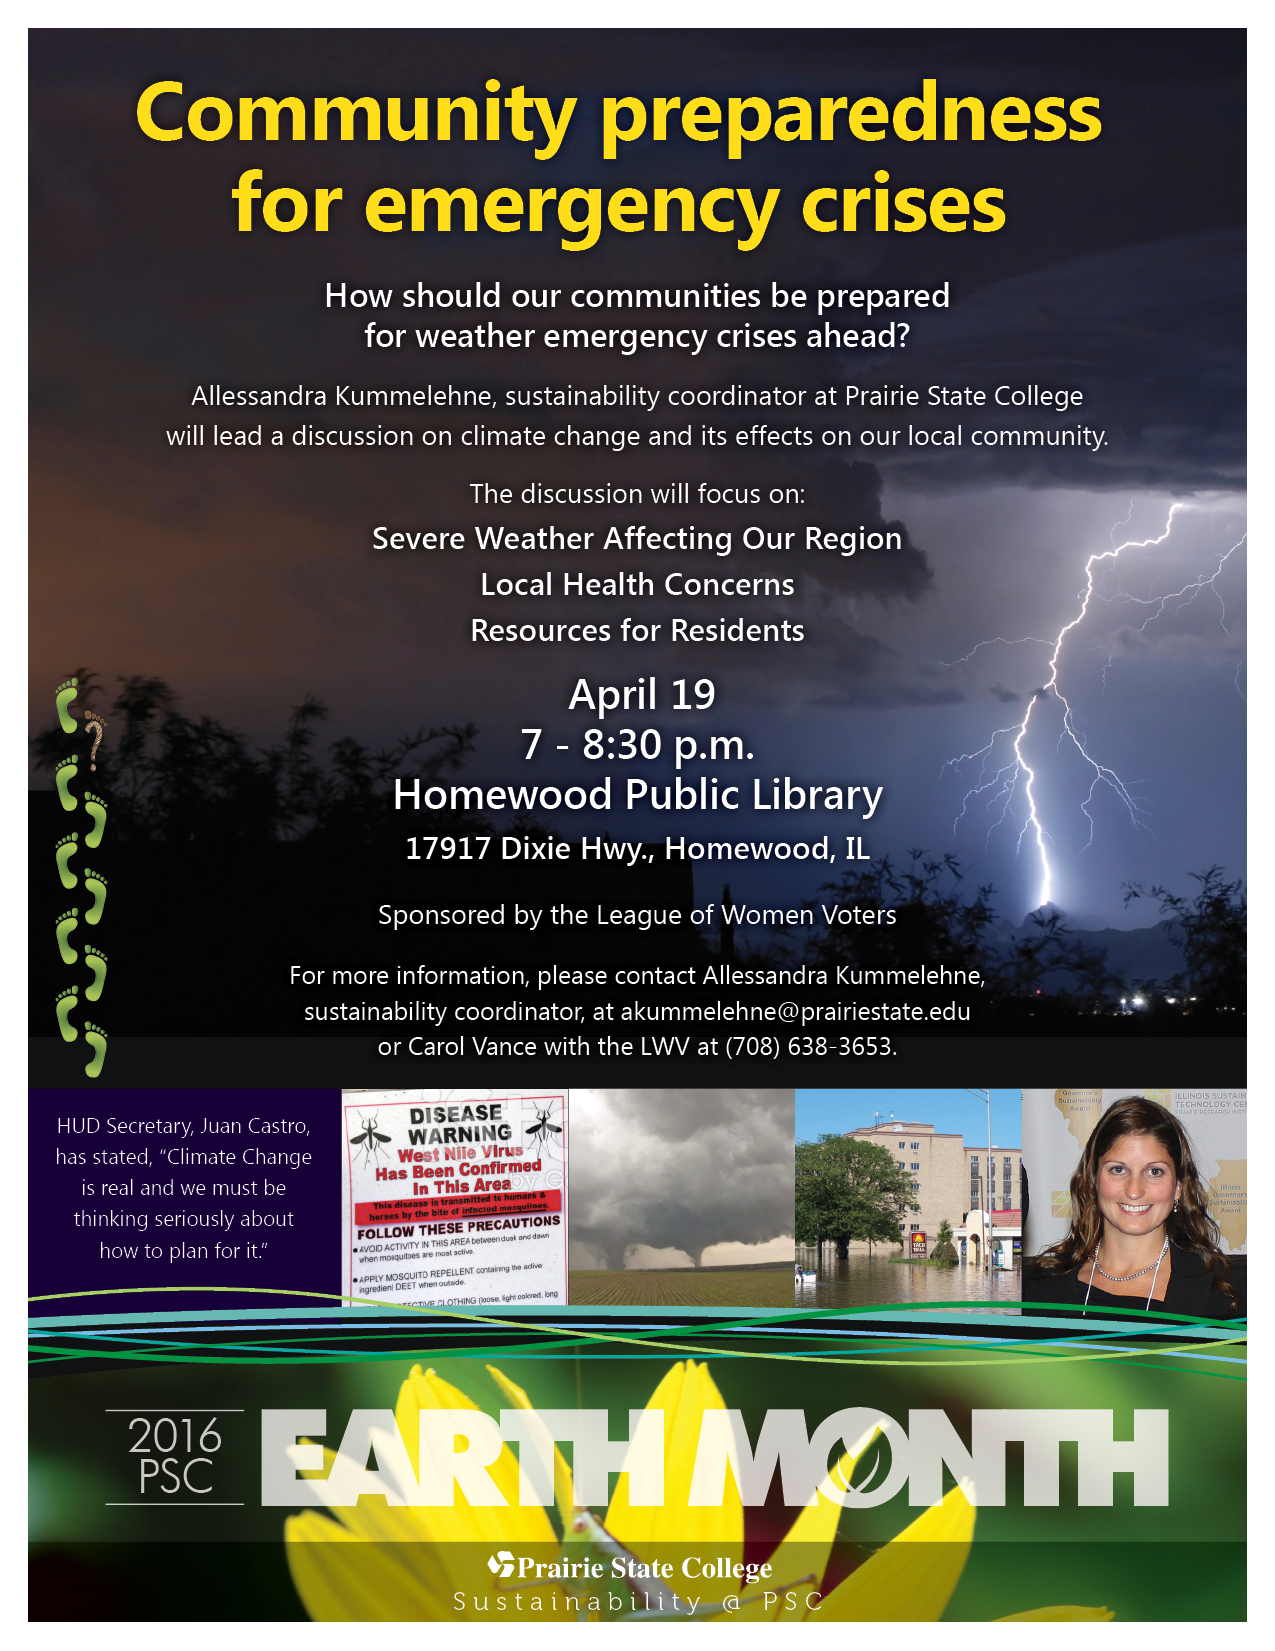 Community Preparedness for Emergency Crises